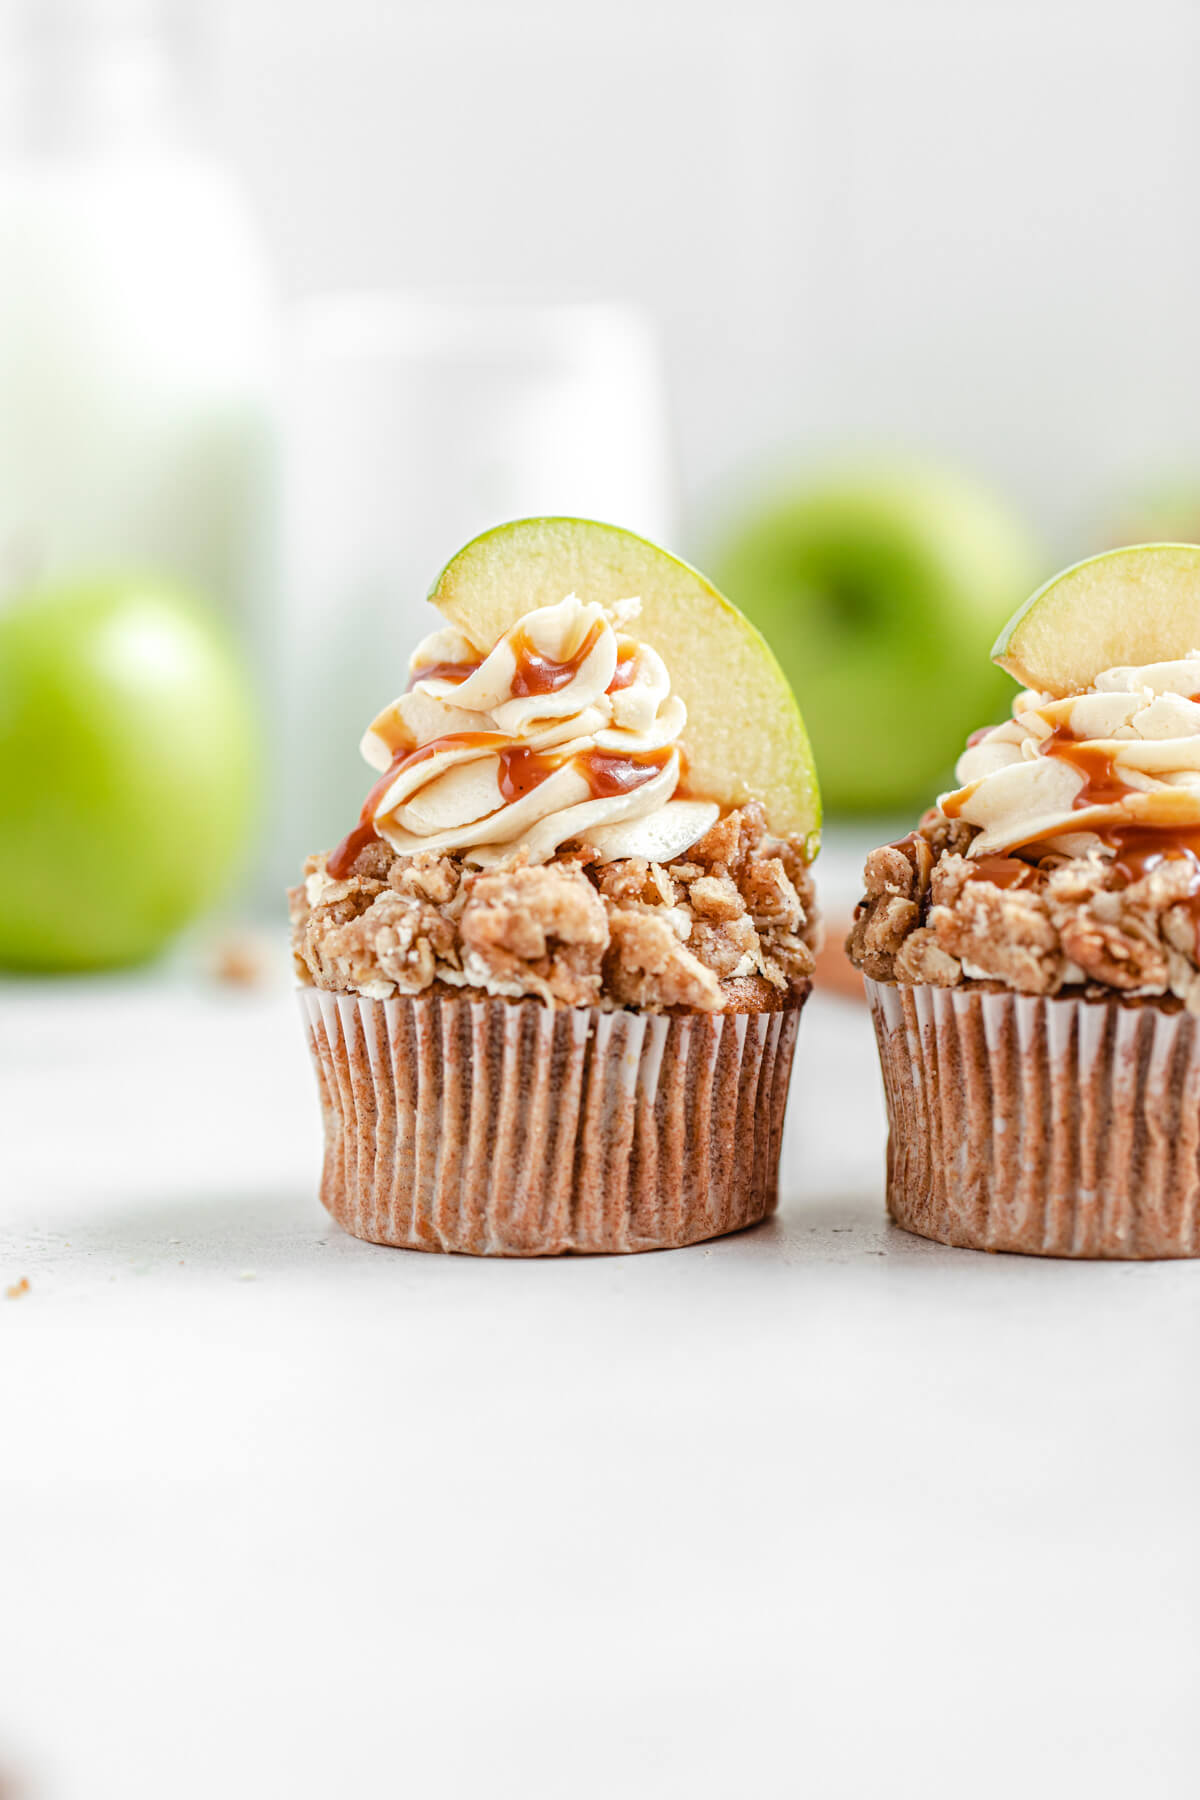 two cupcakes side by side with green apples in the background